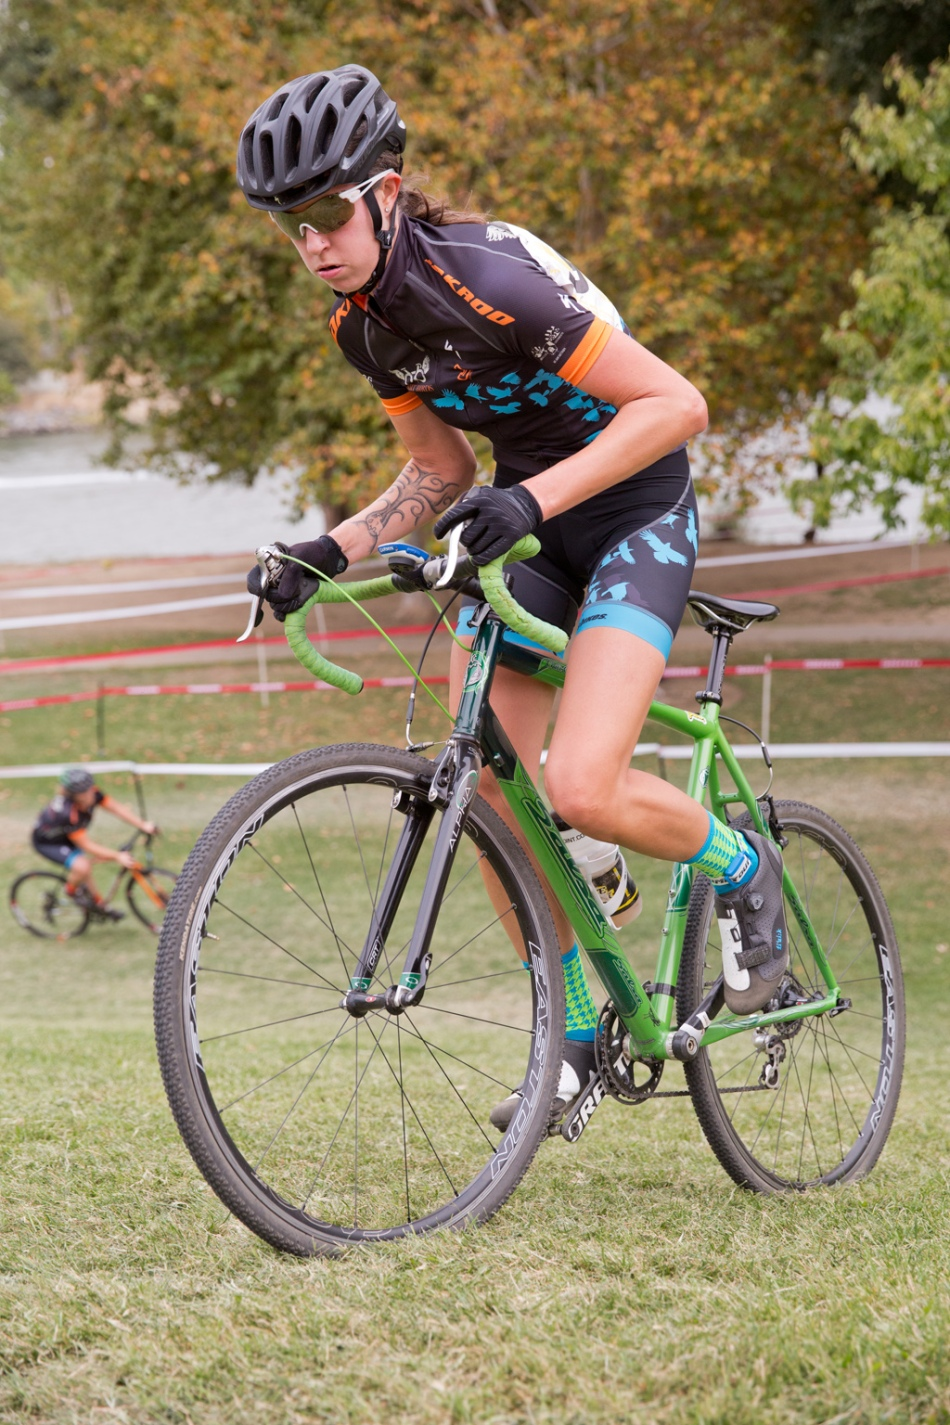 Dirt Bird's Co-Founder Audrey Biehle Striking Up Heckle Hill at WSCXGP